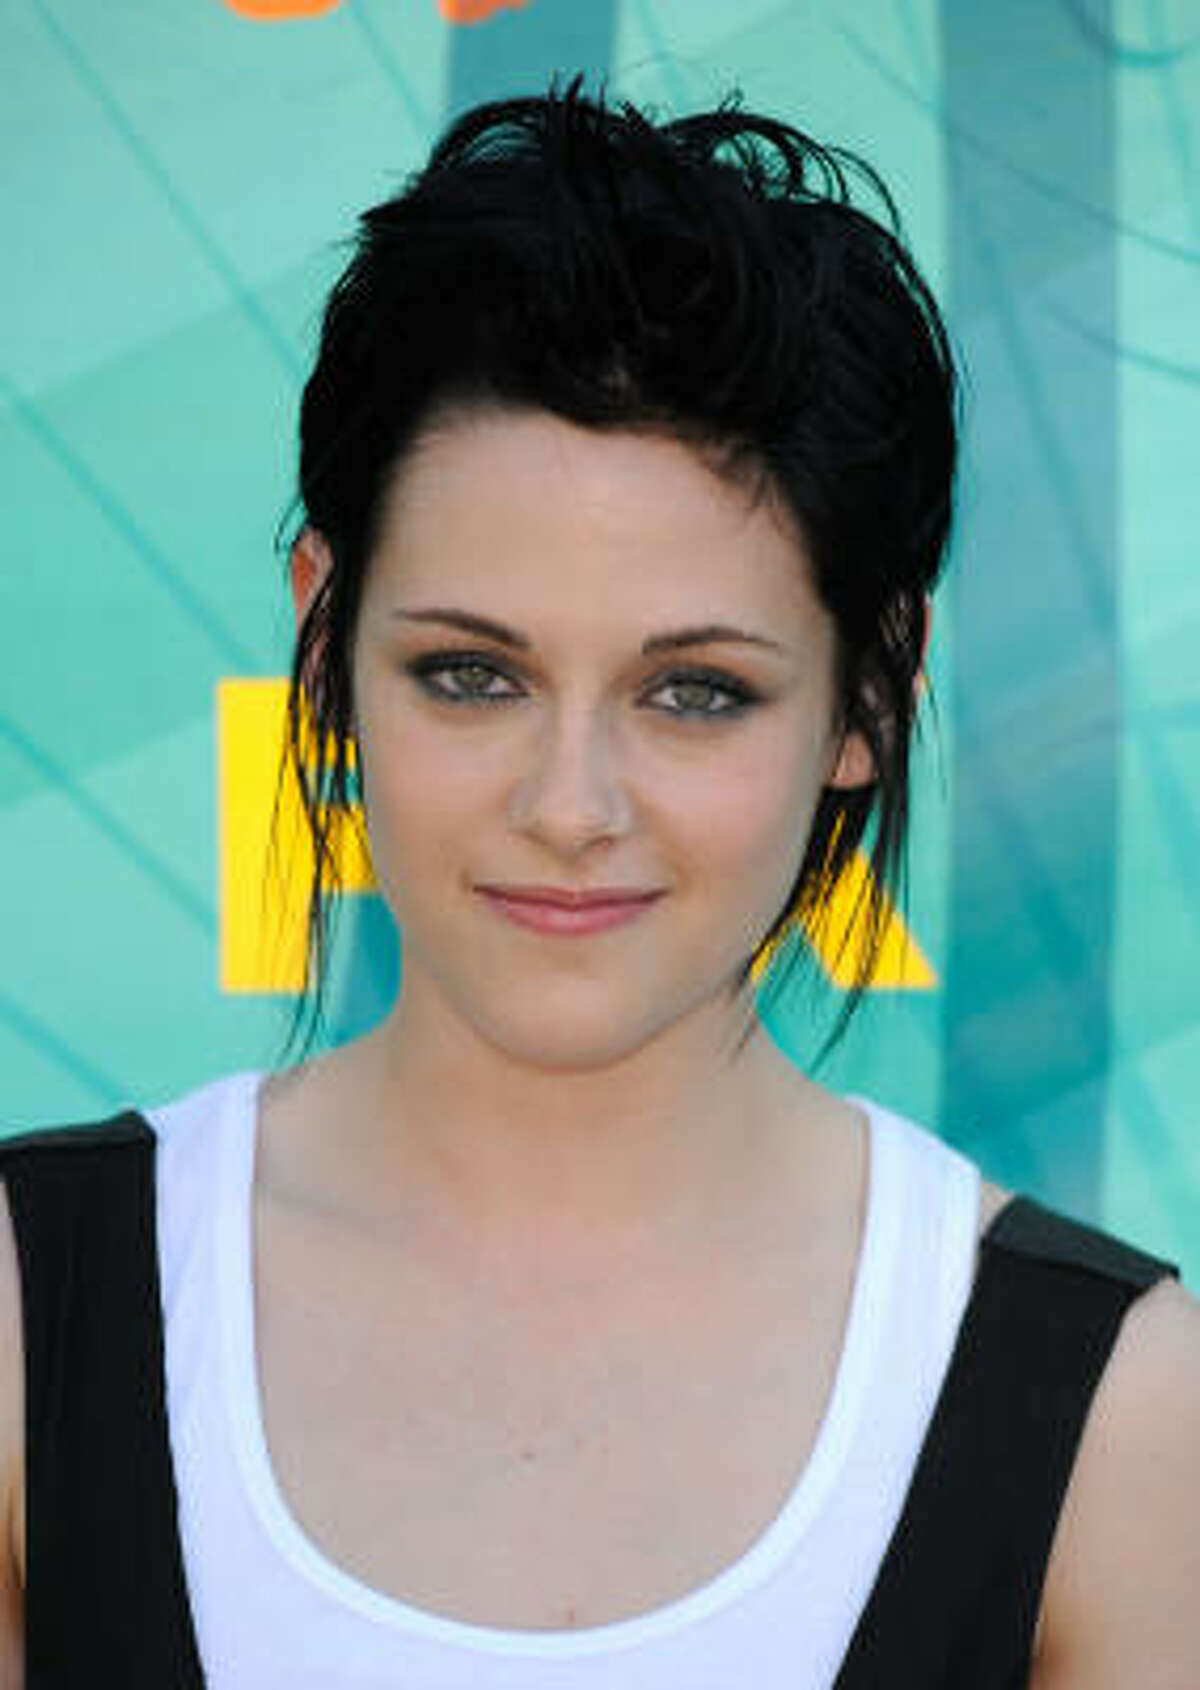 Kristen Stewart won best drama actress for her role in Twilight at the Teen Choice Awards.